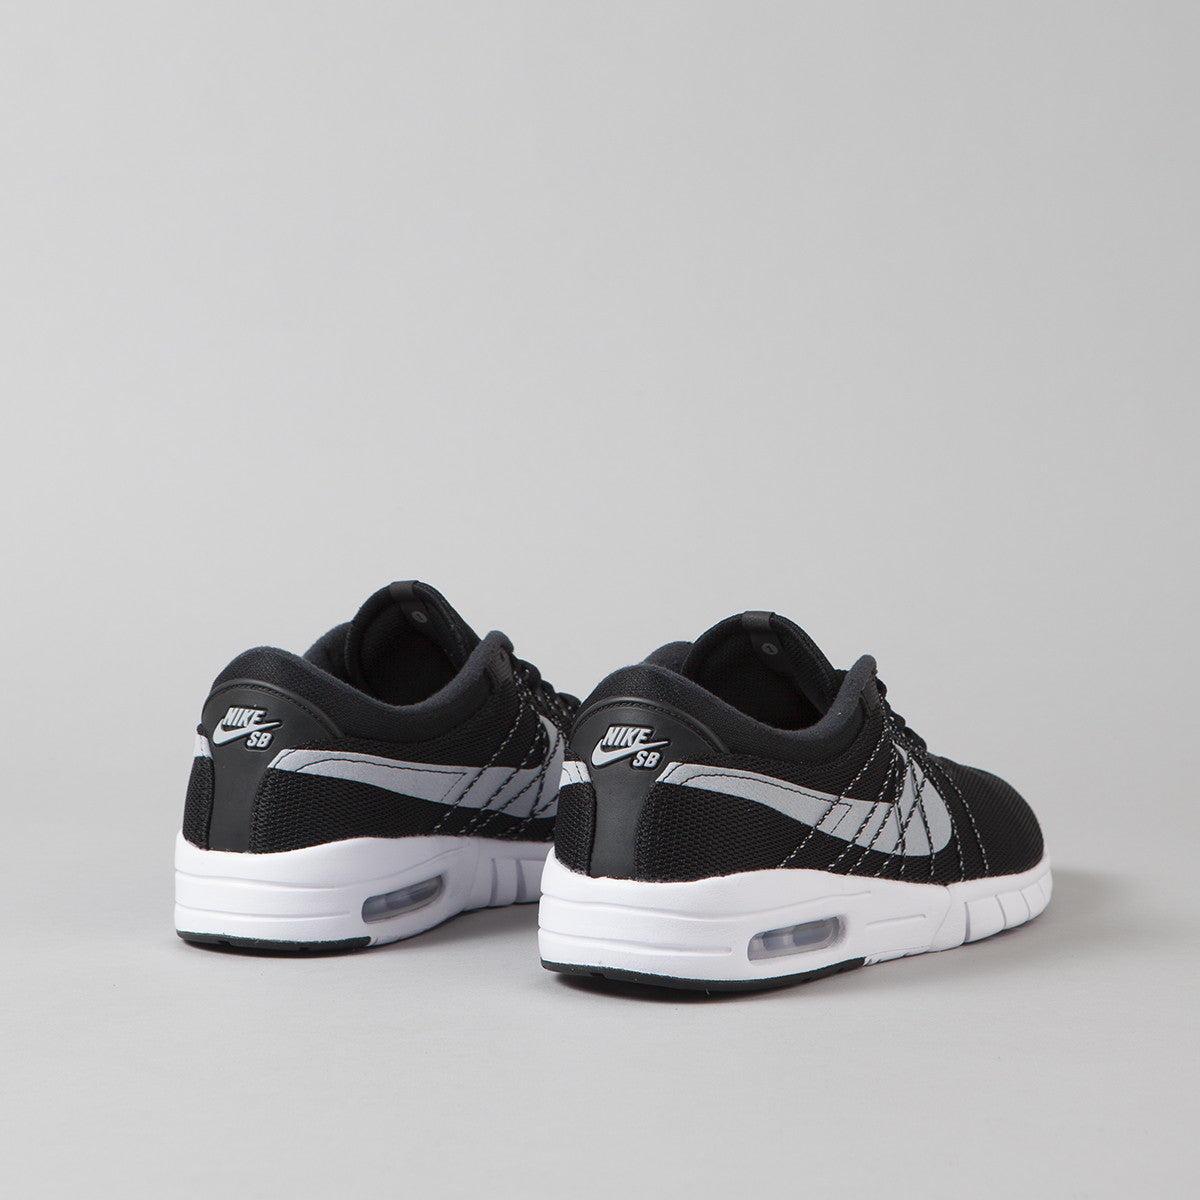 Nike SB Koston Max Shoes - Black / Wolf Grey - White